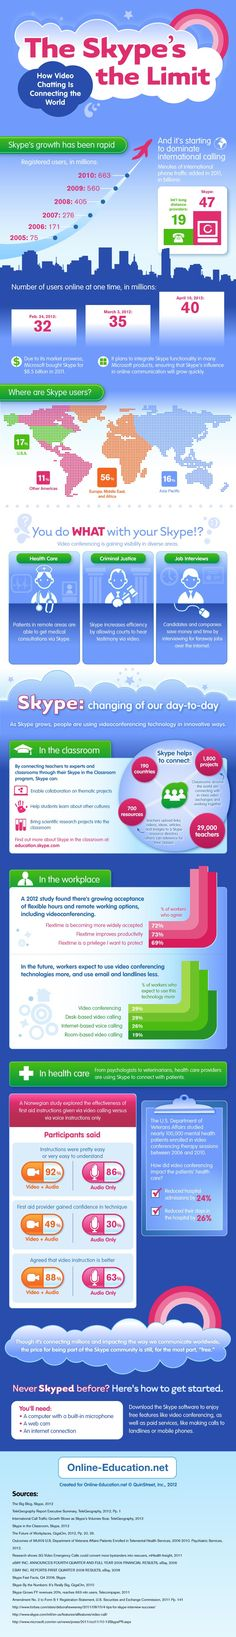 Check how Skype could be used not only in learning & development function, but in other areas as well. You can also find here information about exponential growth of Skype usage. #infographic #2012